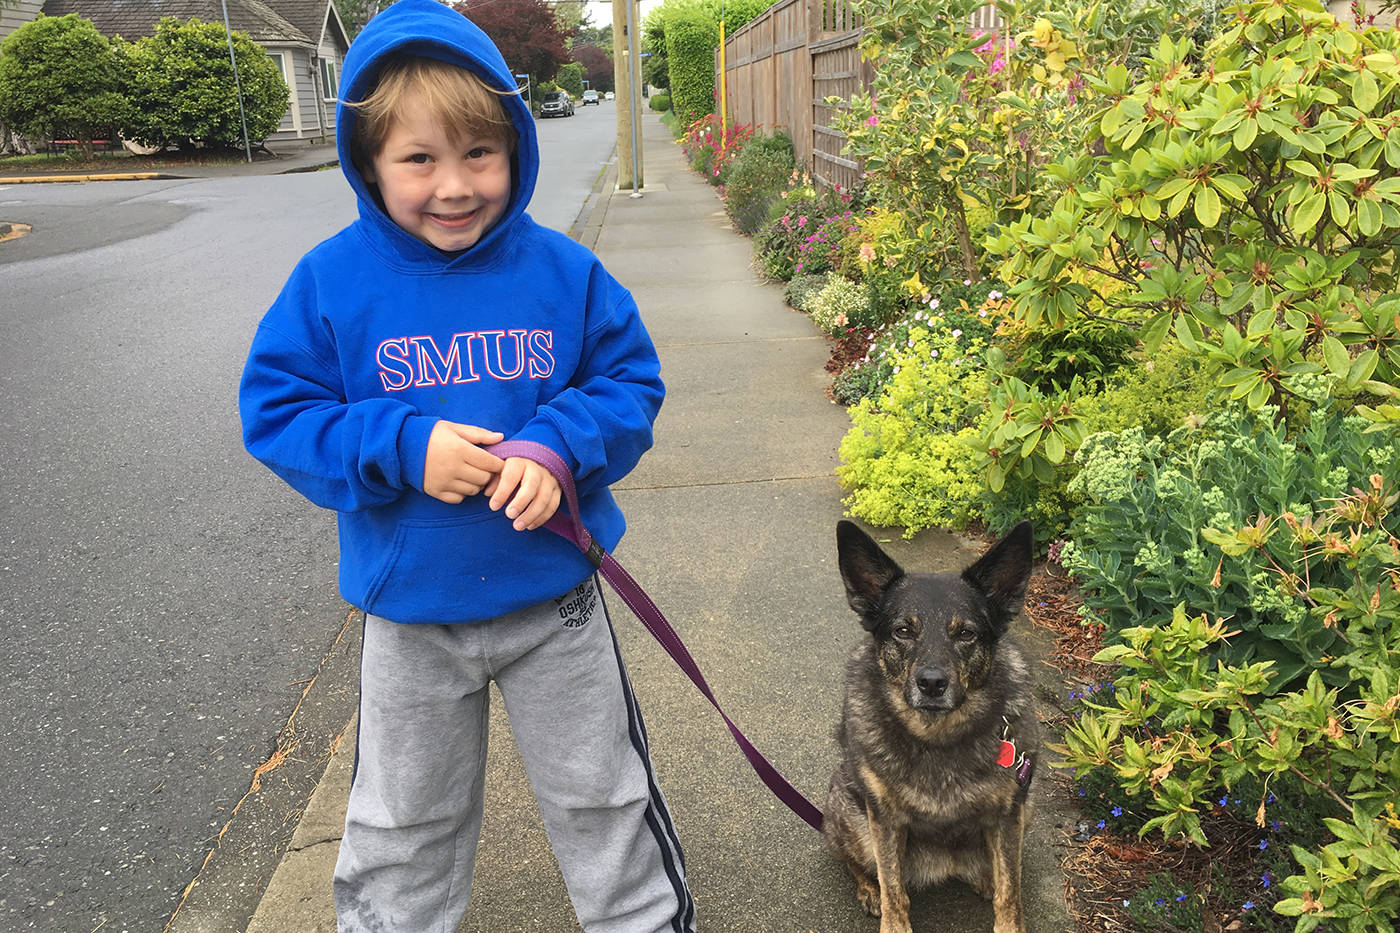 B.C. boy looks to add new word to Webster's dictionary